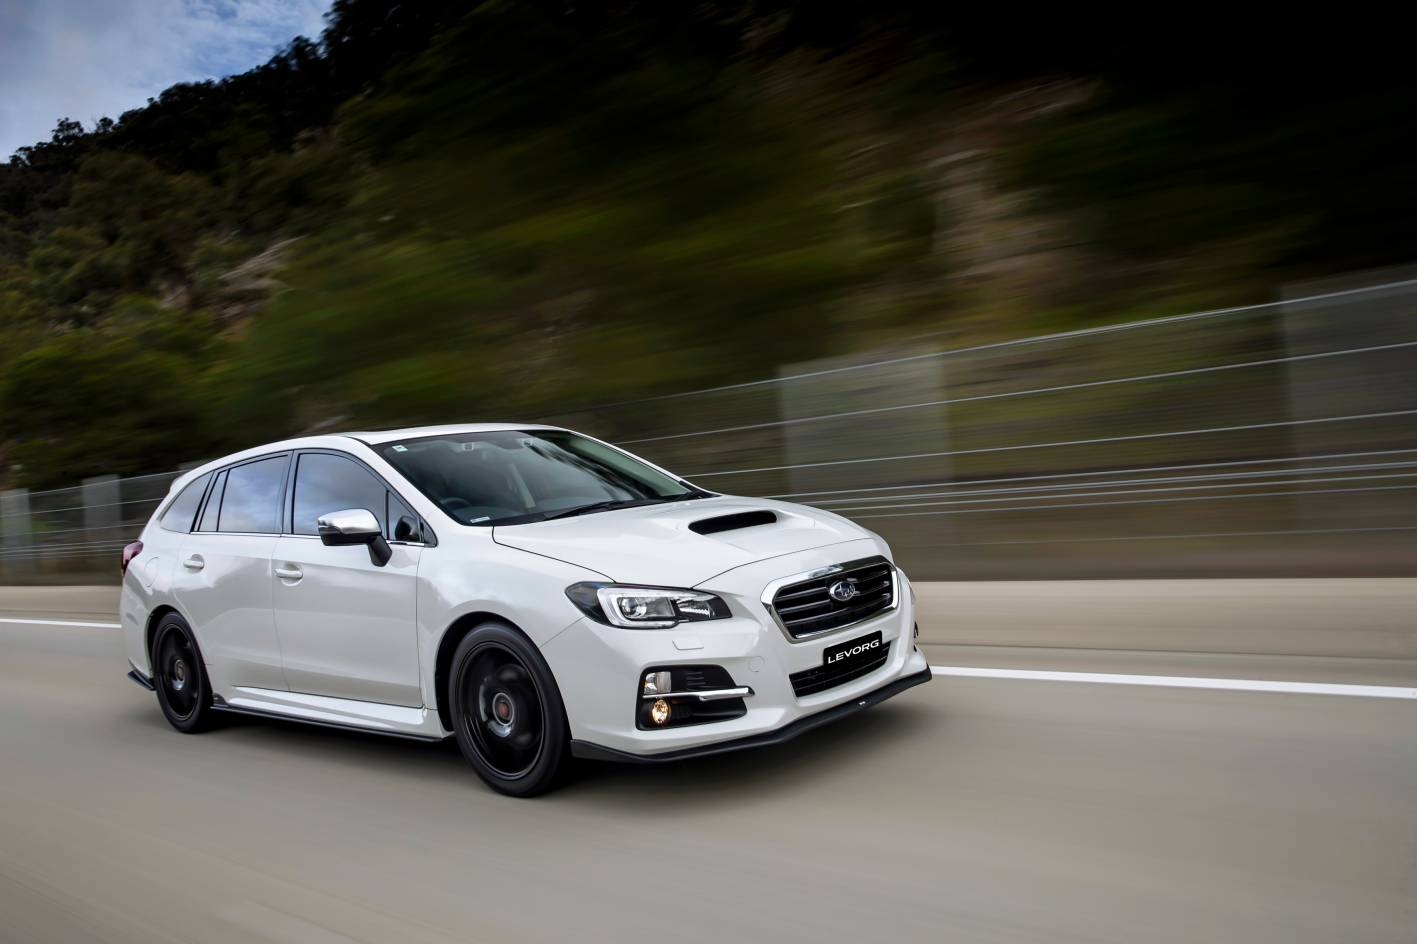 2017 Subaru Levorg Wagon Launches In Australia